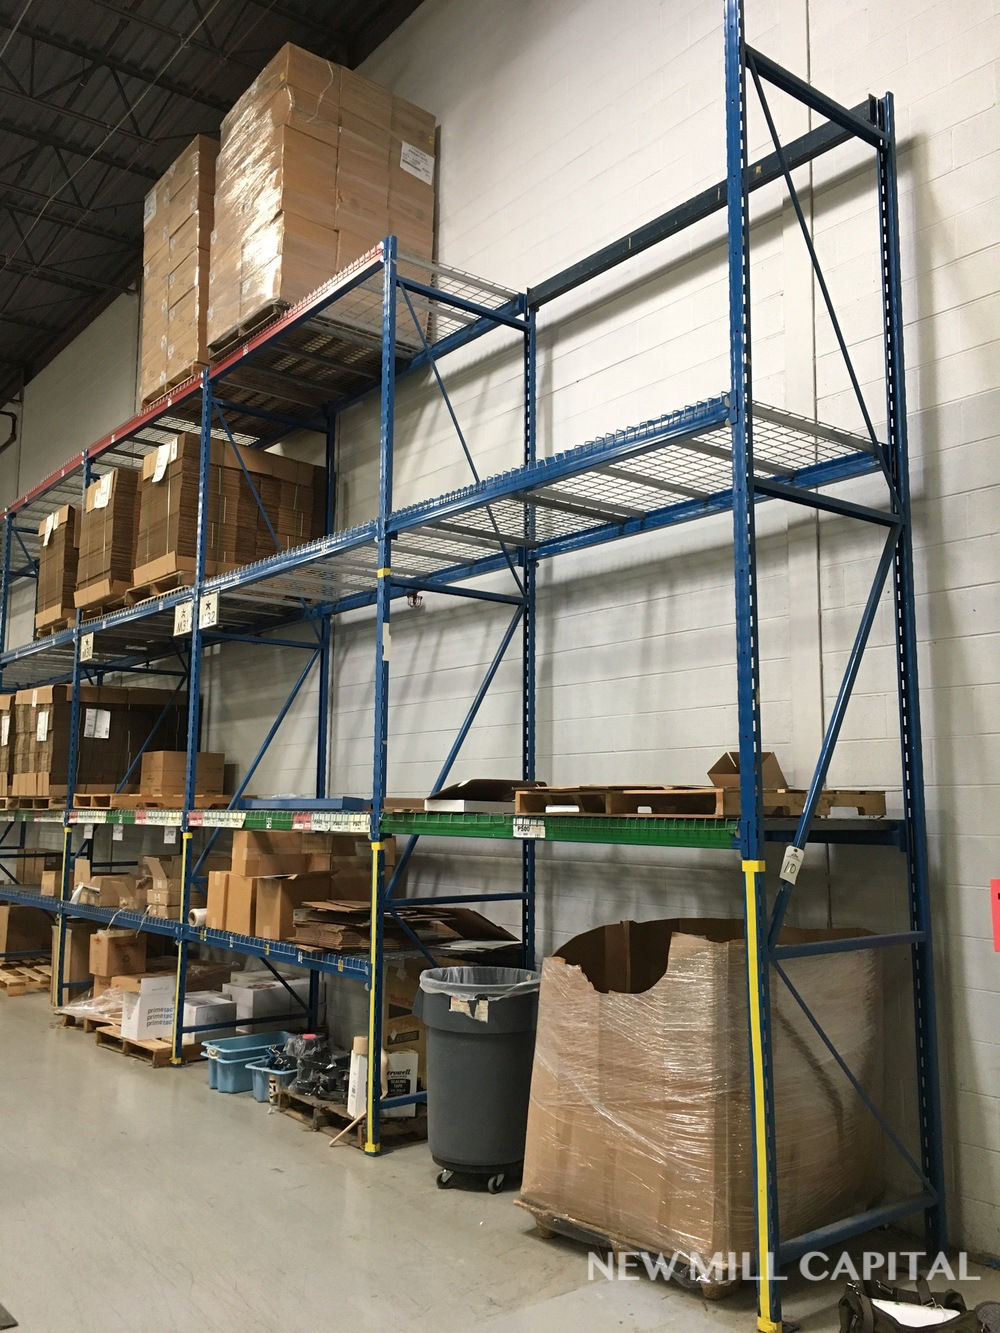 Lot 10 - Ridg-U-Rak Slotted Pallet Rack, (18) Uprights (3in x 1-5/8 in Columns, | Rig: See Lot Description